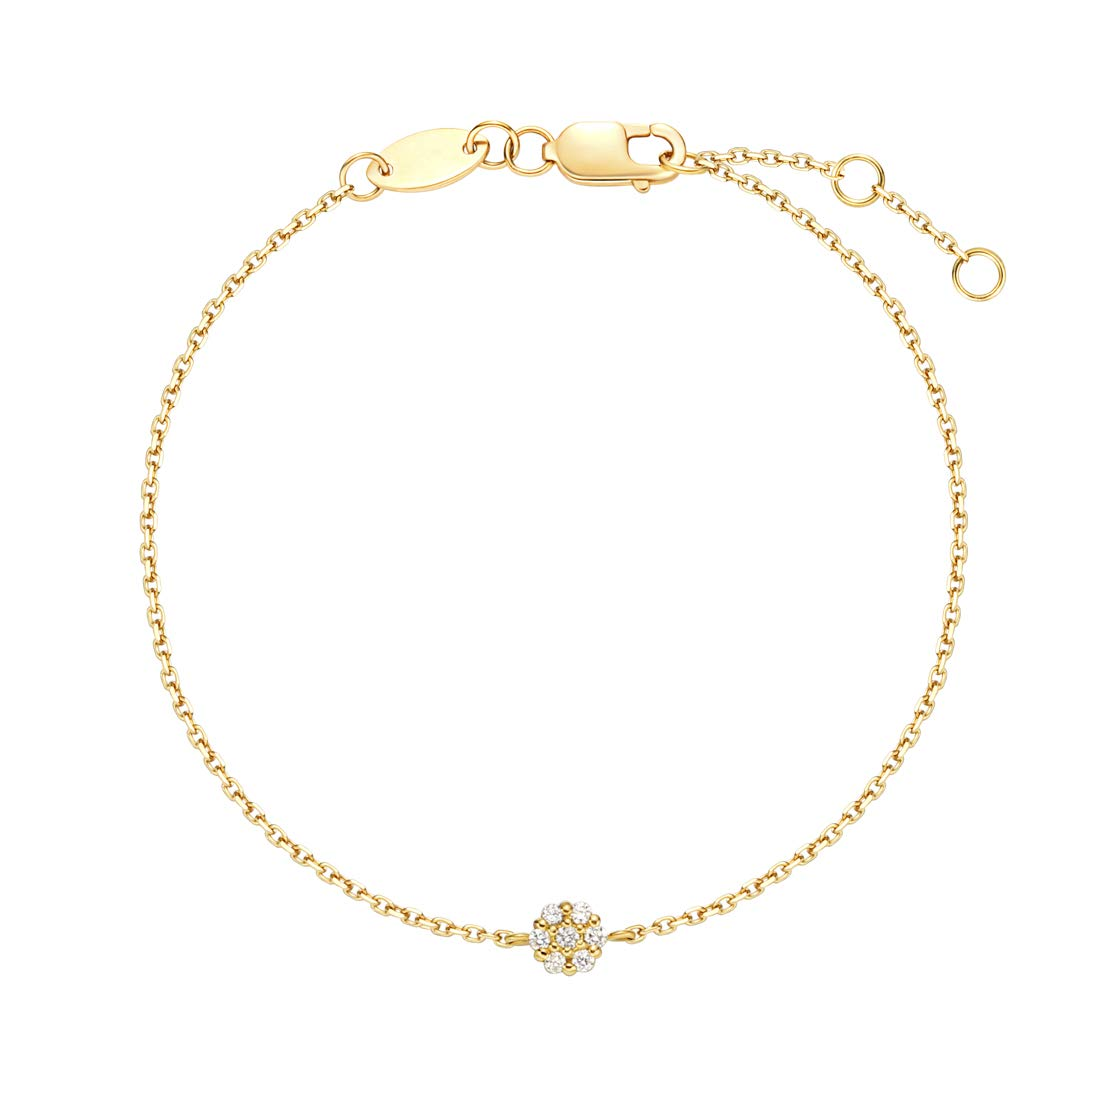 Carleen 18K Solid Yellow Gold Minimalist Dainty Round Floral Pave Diamond Bracelet Delicate Fine Jewelry for Women Girls